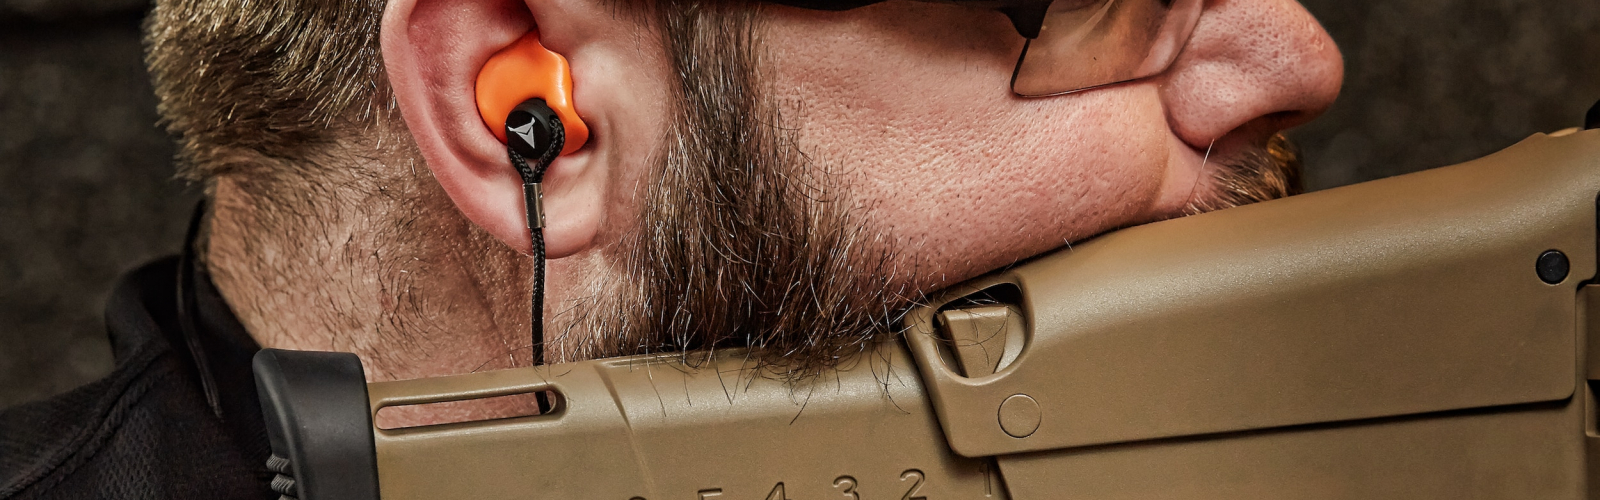 best in-ear electronic hearing protection for shooting